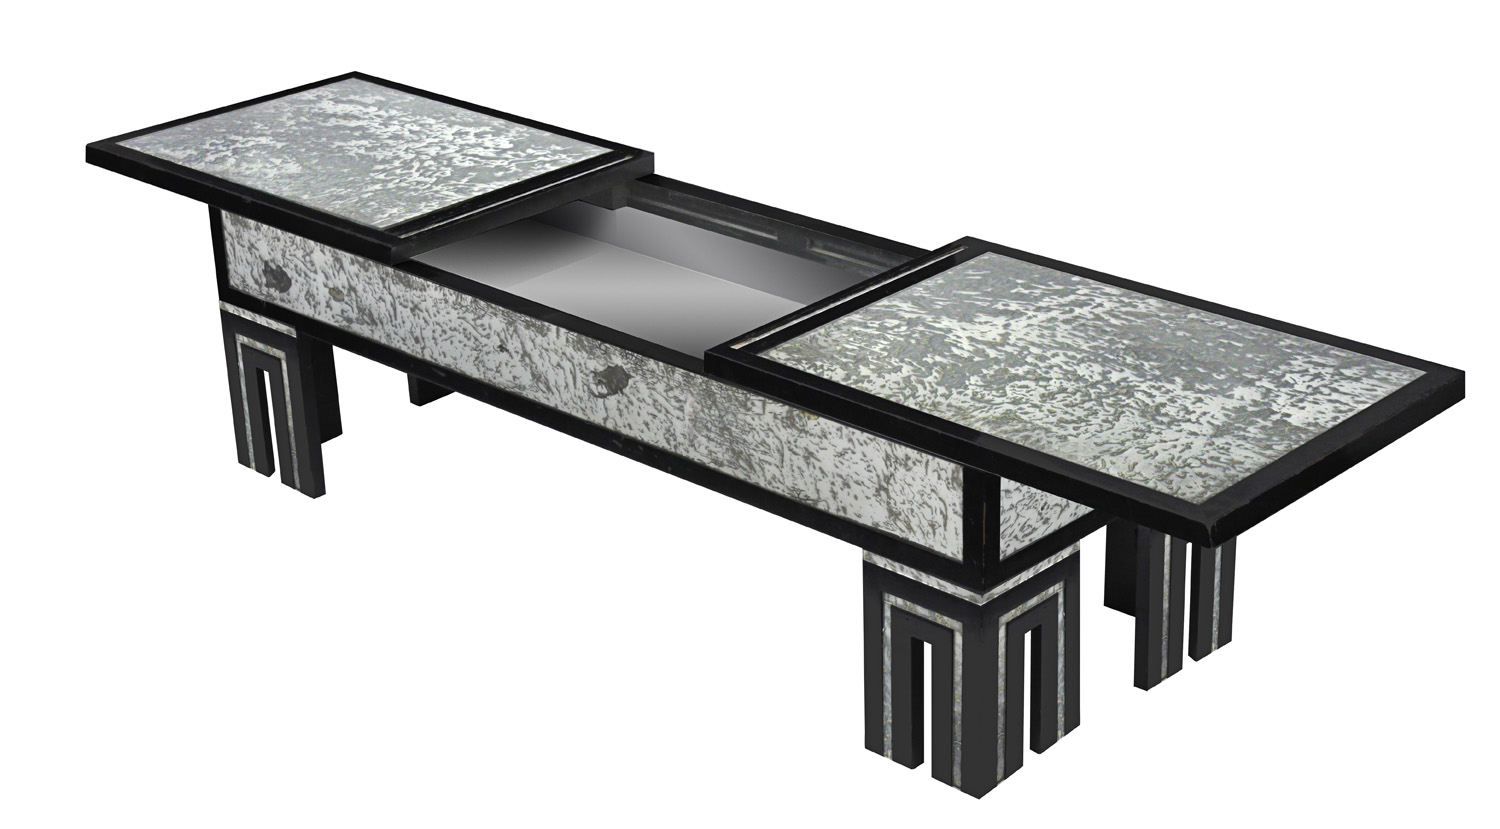 Mont 75 sliding top mottled glass coffeetable401 detail1 hires.jpg